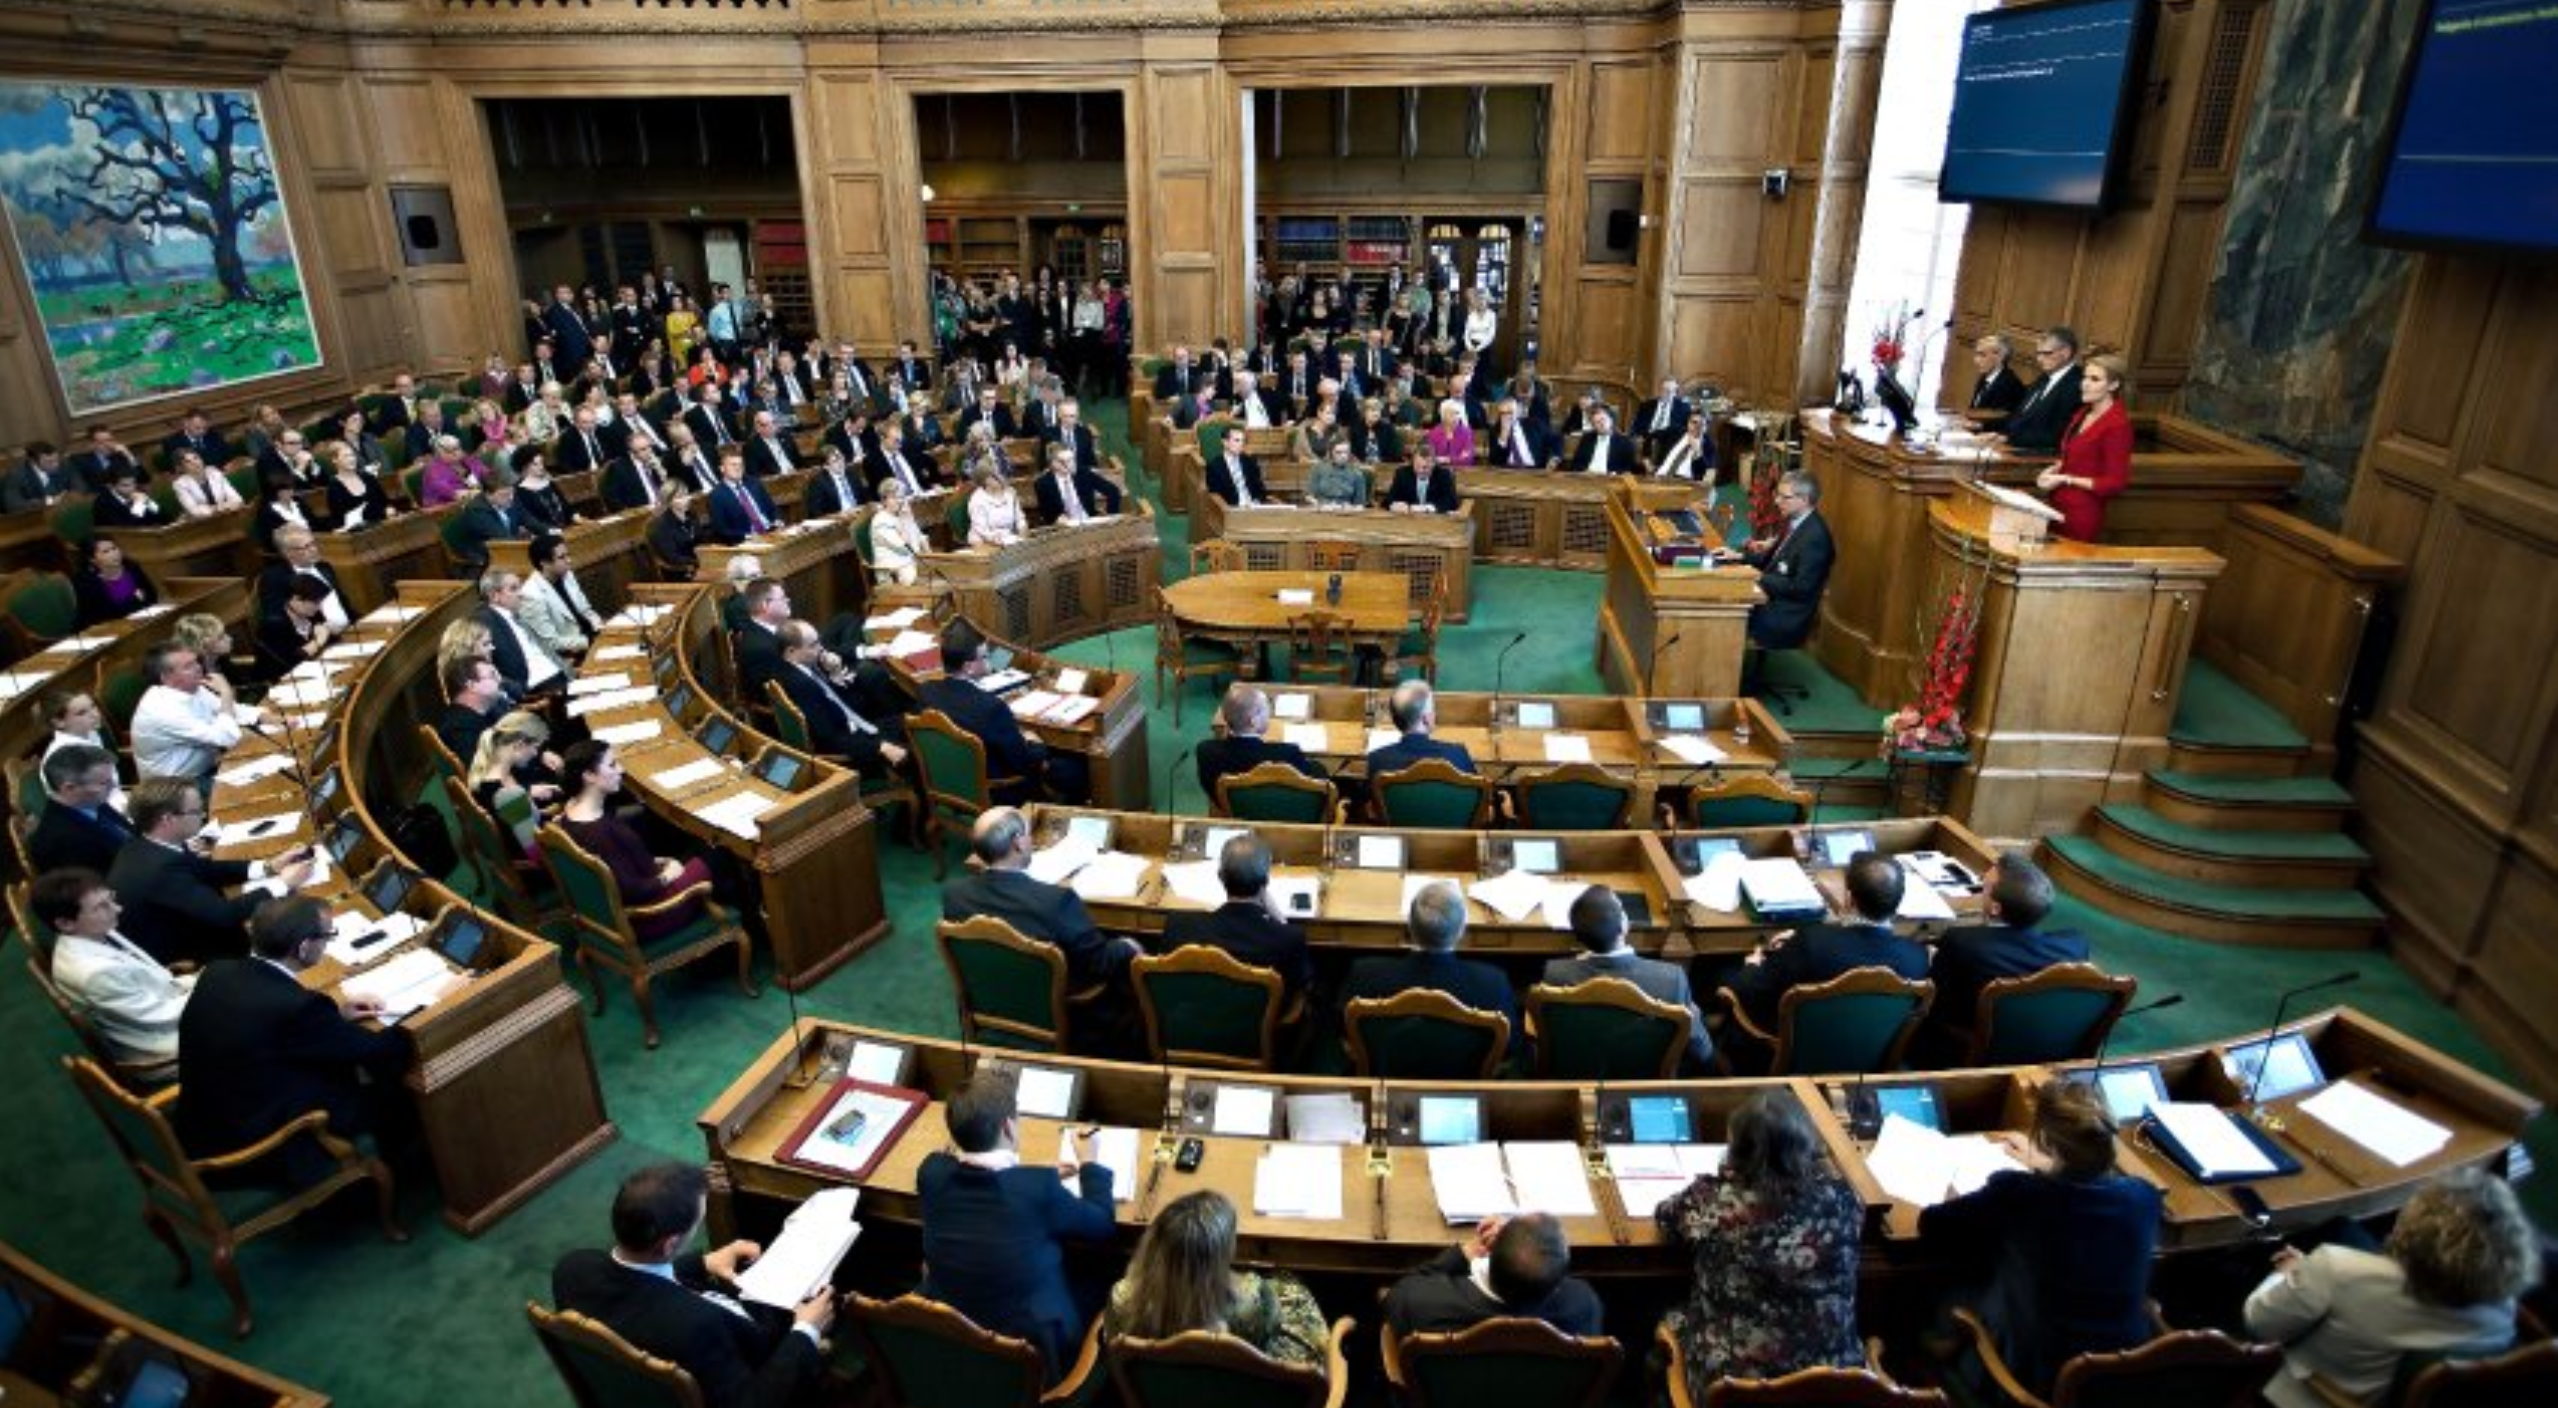 The Folketing: Denmark's Parliament ---- Denmark has consistently been the least corrupt country according to Transparency International's Corruption Perceptions Index